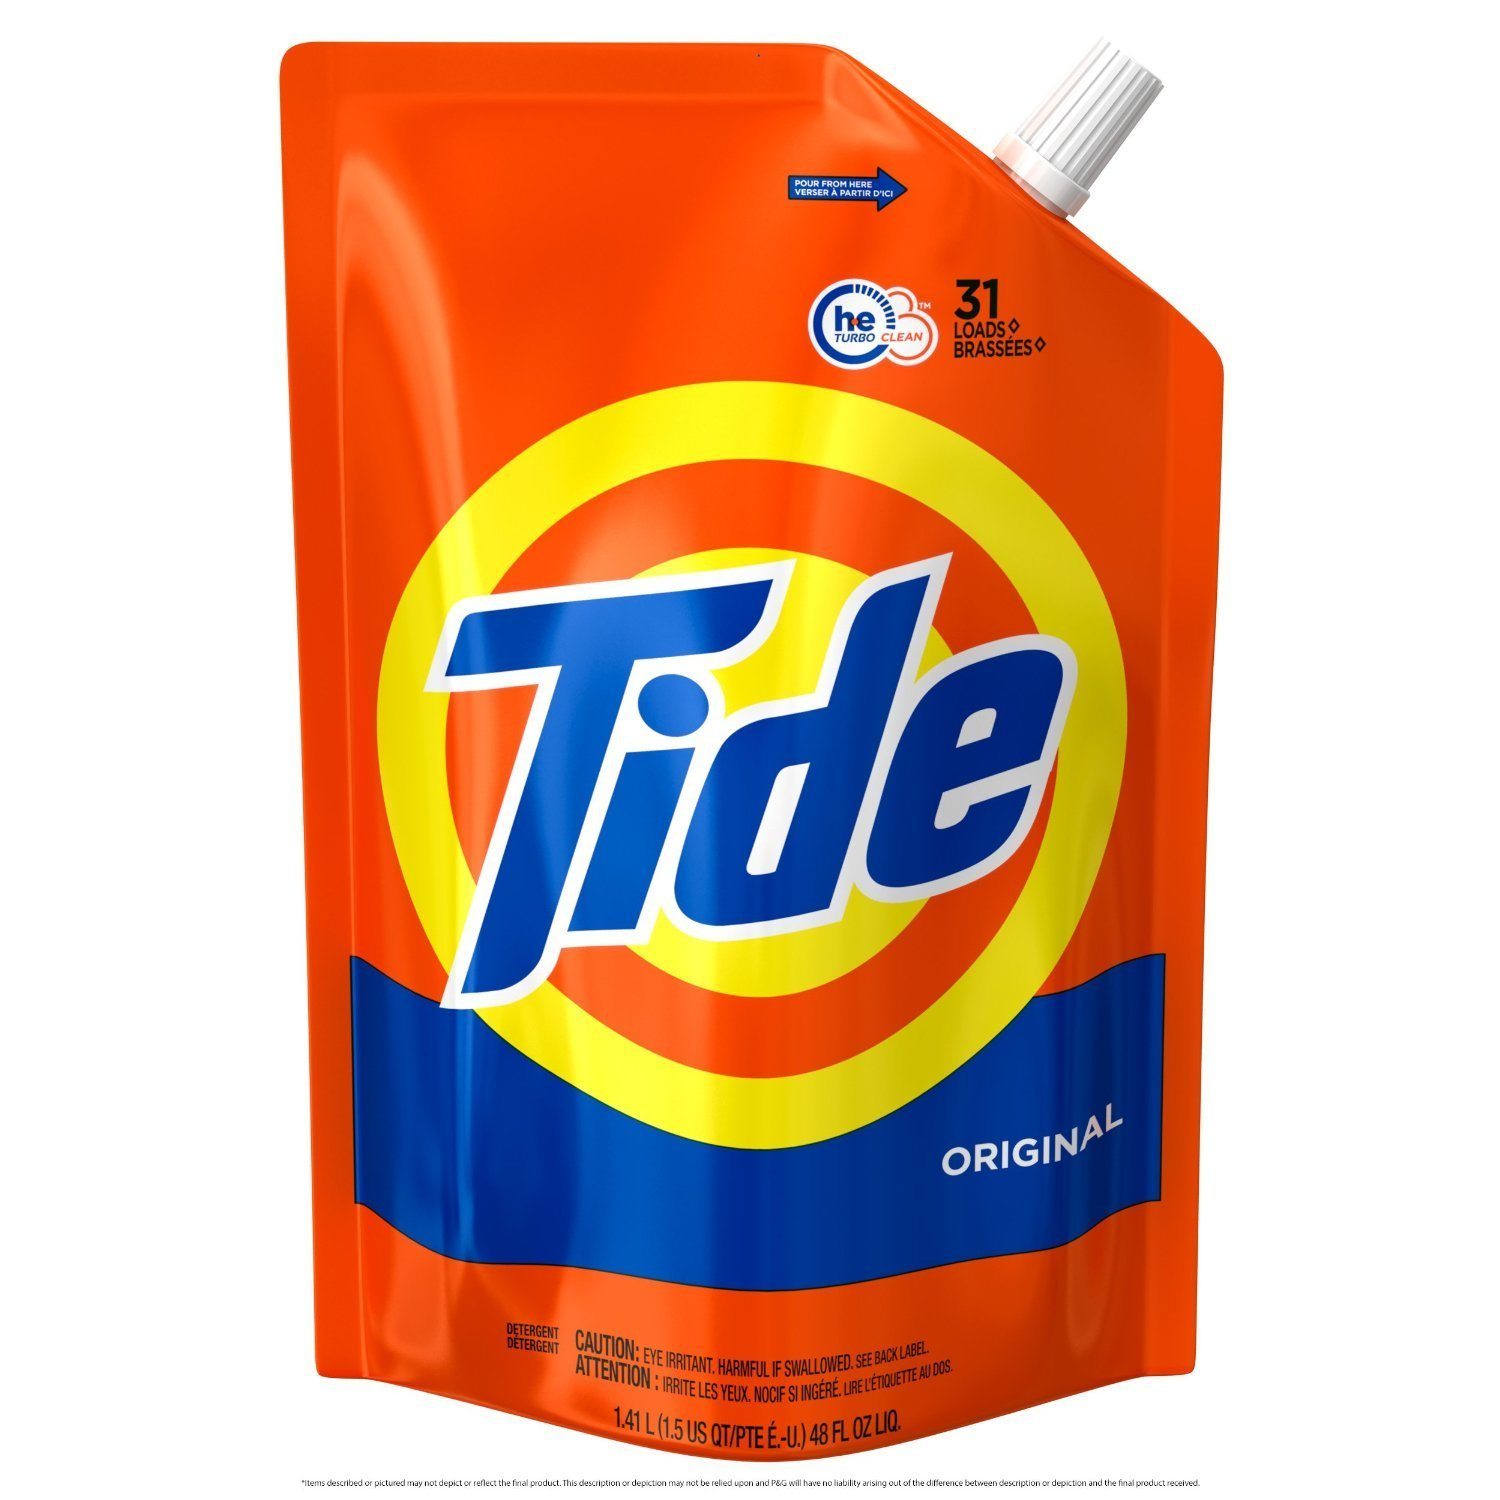 Amazon.com: Tide Liquid Laundry Detergent Smart Pouch, Original Scent, HE Turbo Clean: Home & Kitchen